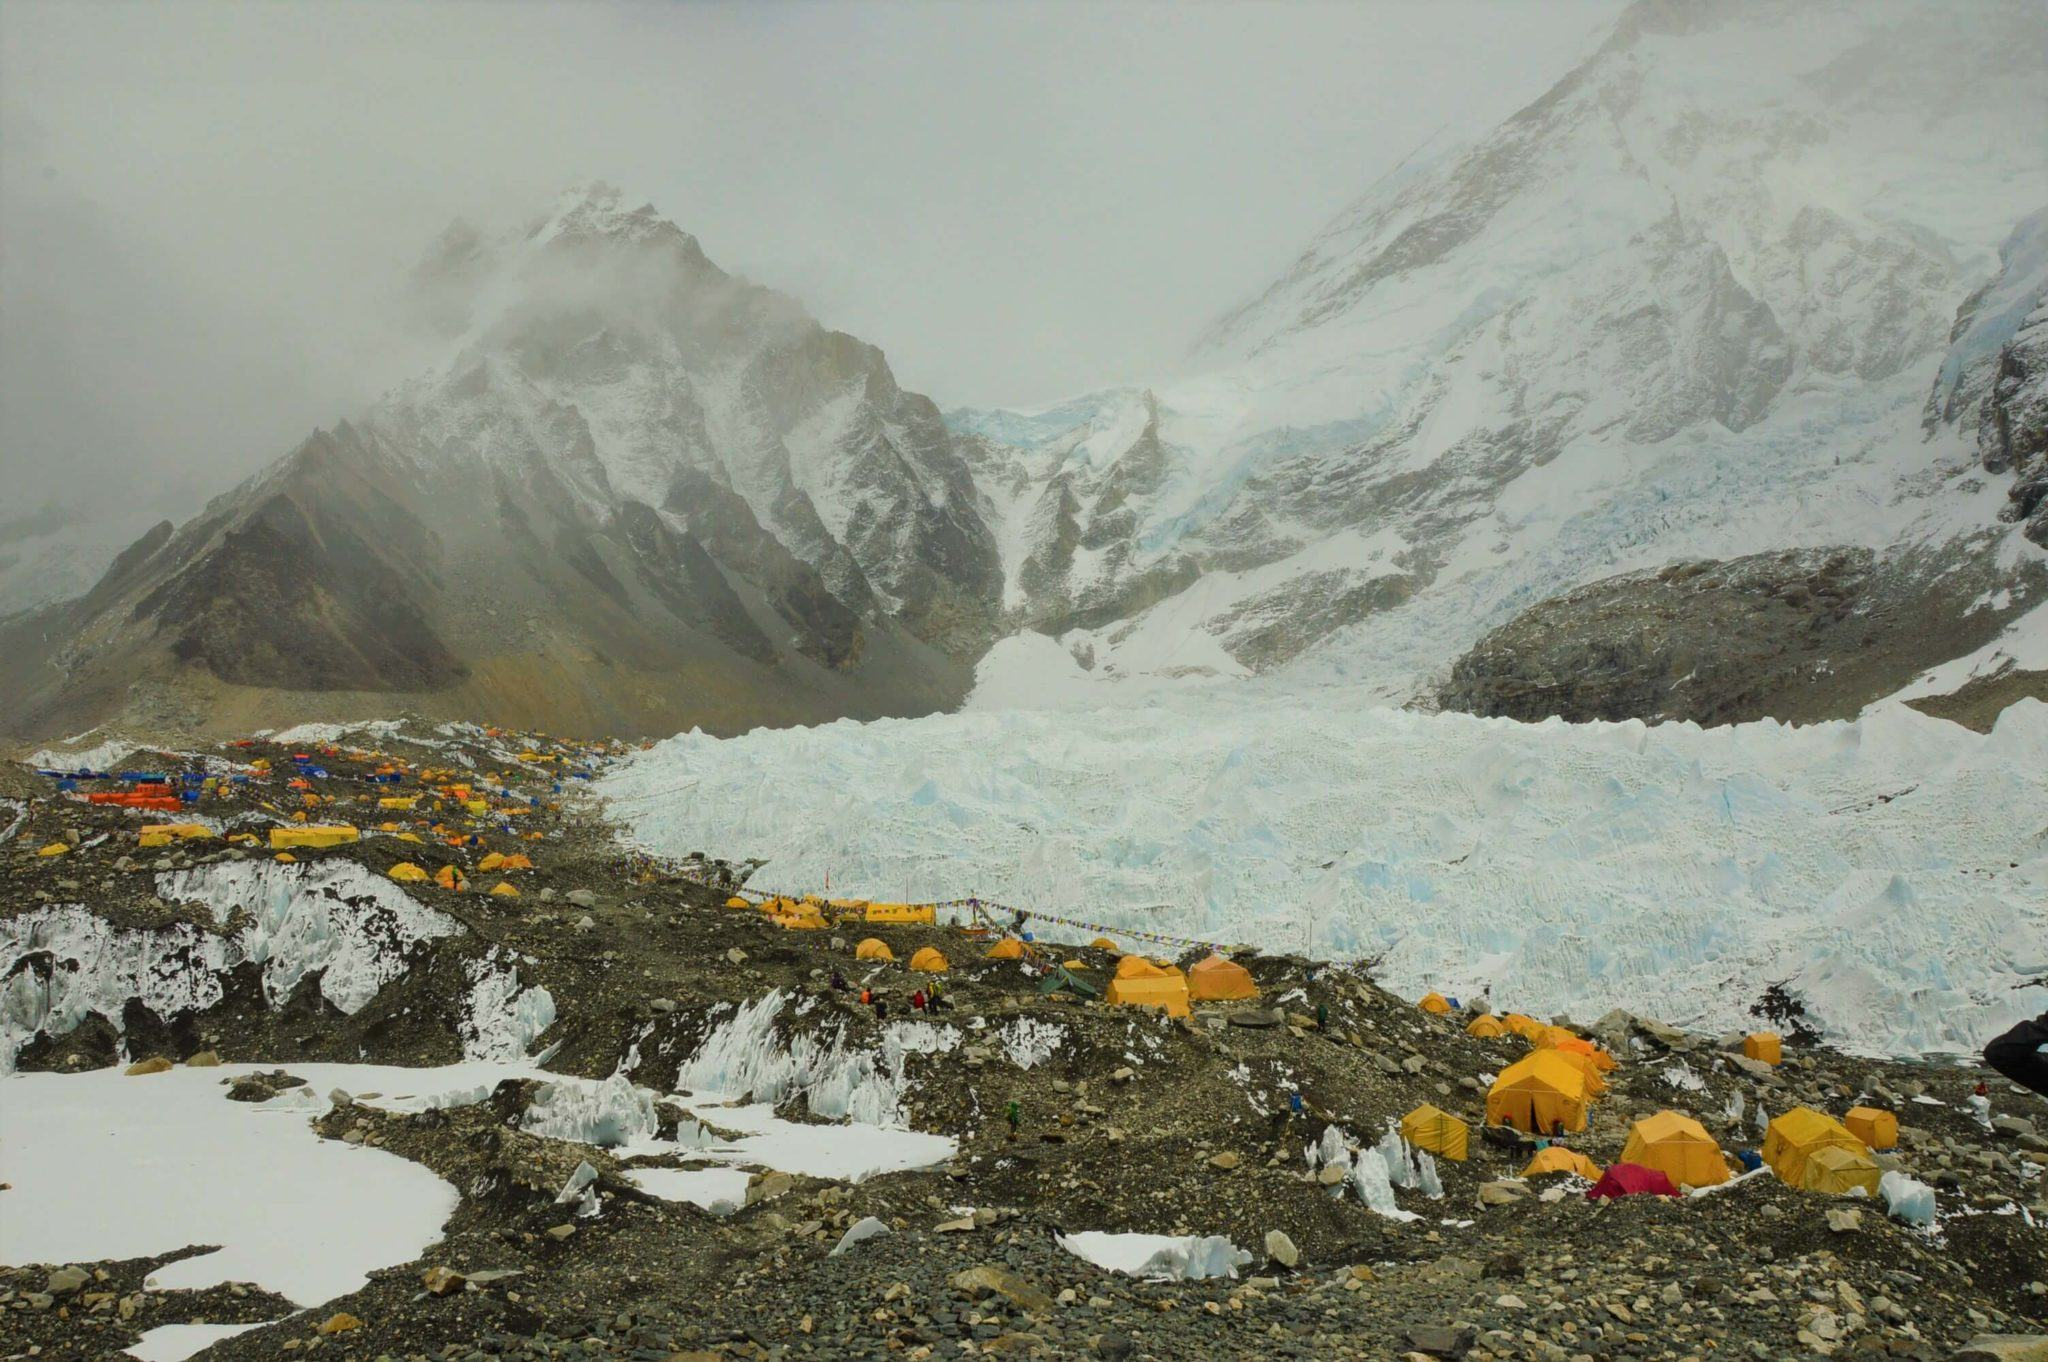 everest base camp with yellow tents